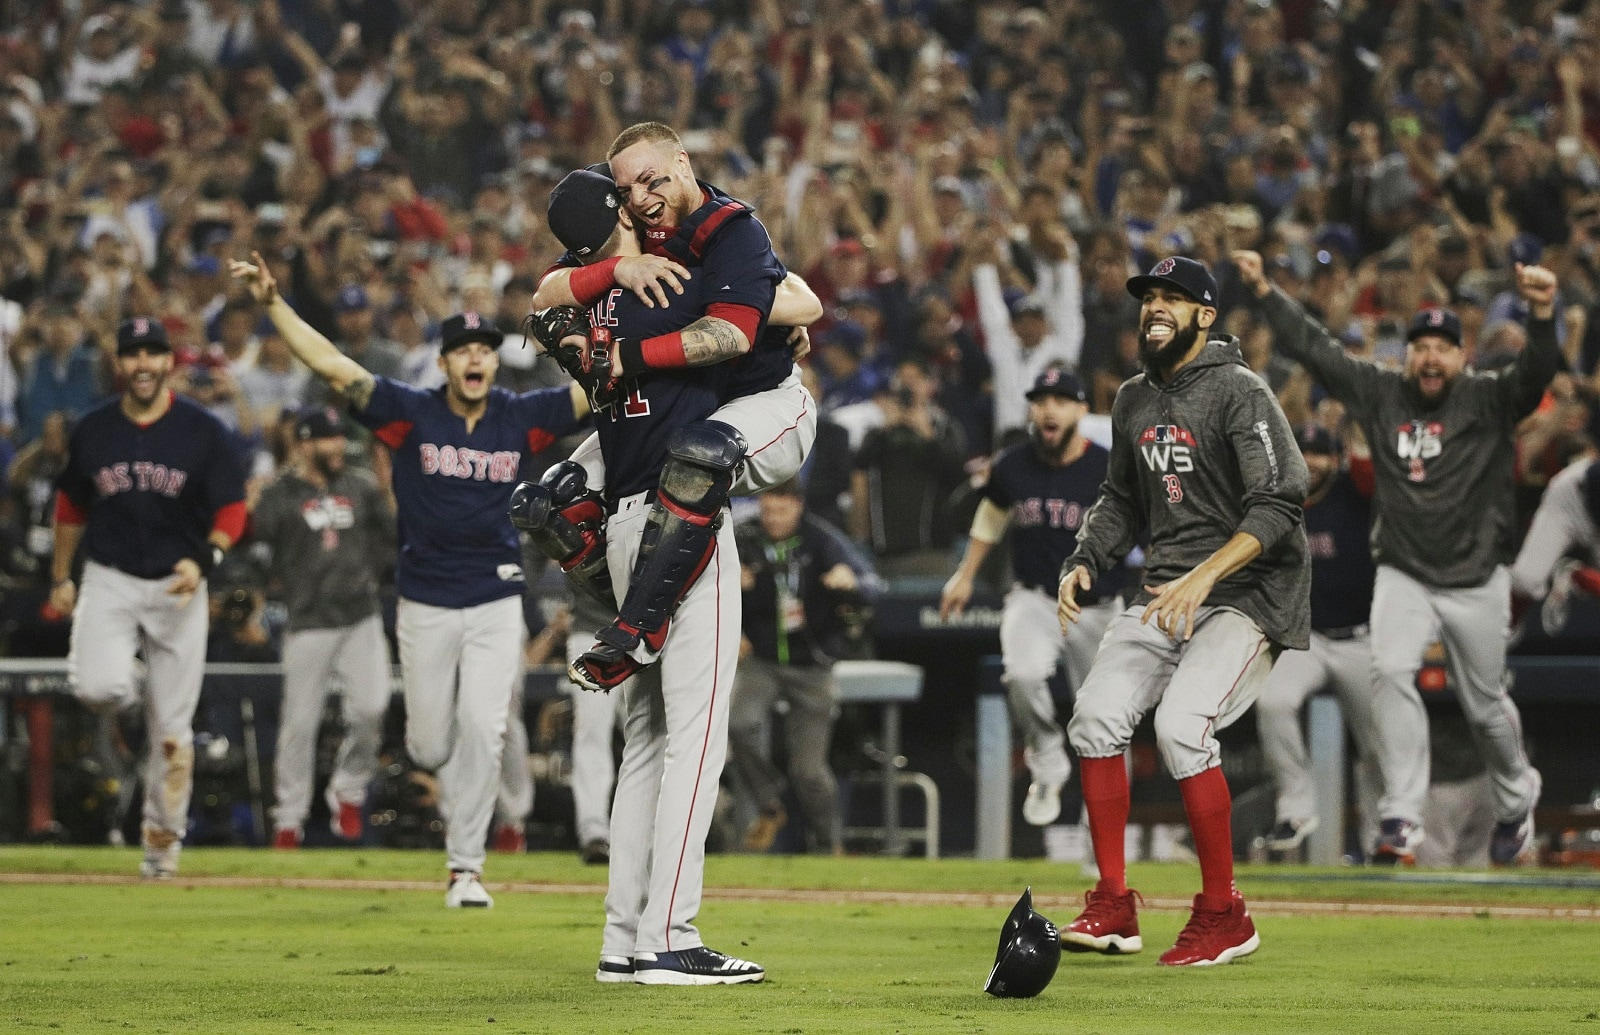 The Boston Red Sox celebrate after Game 5 of baseball's World Series against the Los Angeles Dodgers on October 28, 2018, in Los Angeles. The Red Sox won the game 5-1 to win the series 4 games to 1. (AP Photo/Jae C. Hong)